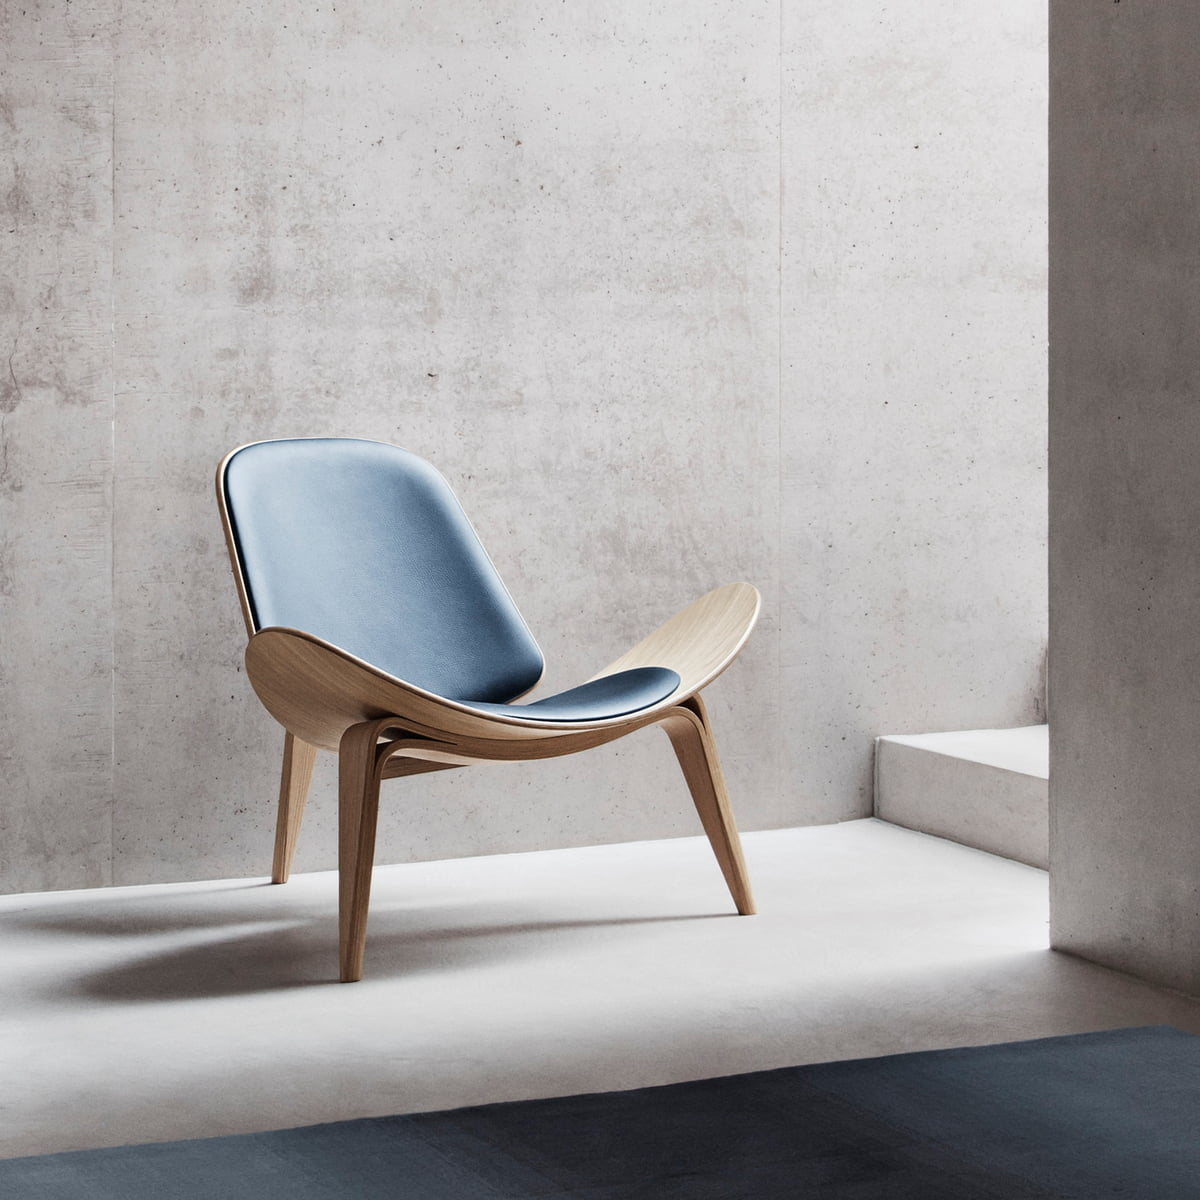 shell-chair-hans-wegner-shell-chair-online-furnishplus-1